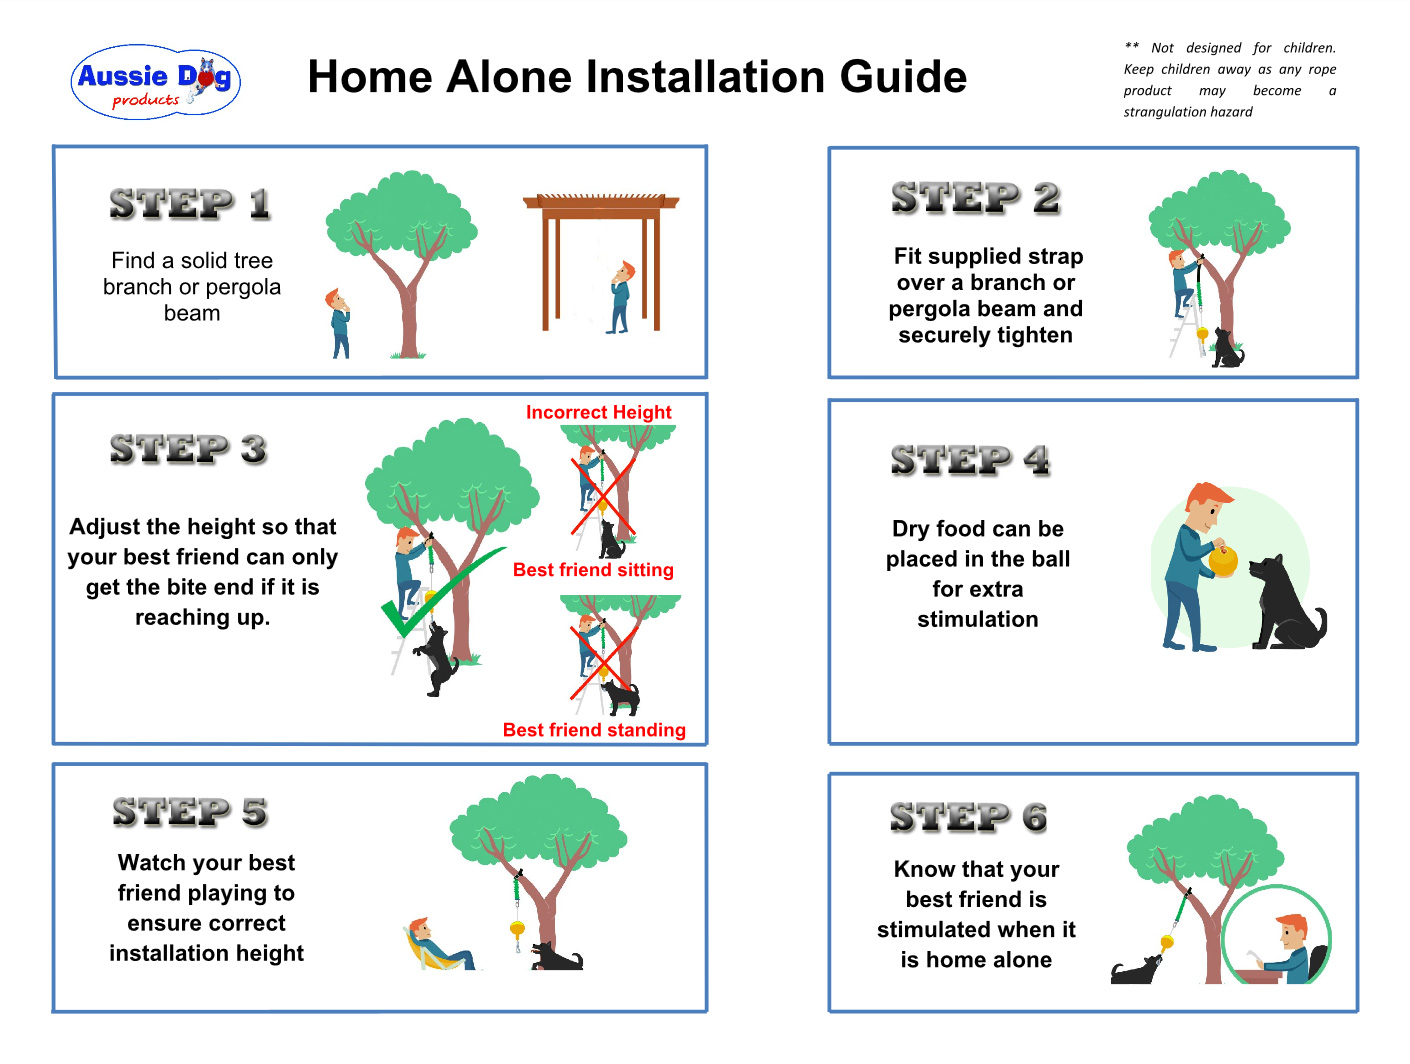 Home Alone Installation Guide